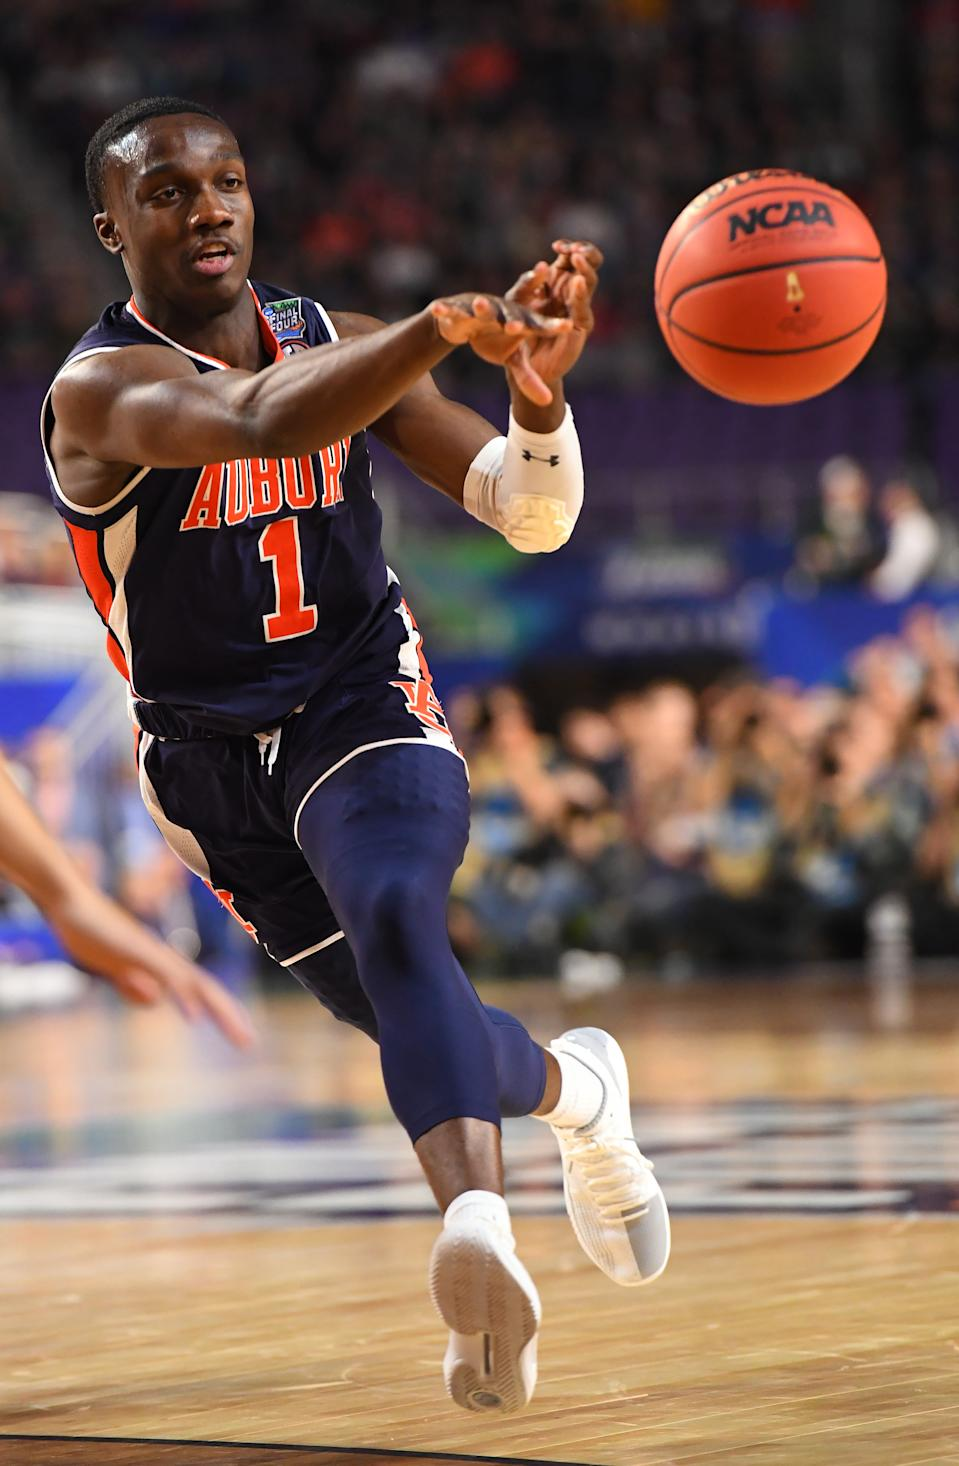 Jared Harper #1 of the Auburn Tigers passes against the Auburn Tigers during the first half of the semifinal game in the NCAA Men's Final Four at U.S. Bank Stadium on April 06, 2019 in Minneapolis, Minnesota. (Photo by Jamie Schwaberow/NCAA Photos via Getty Images)